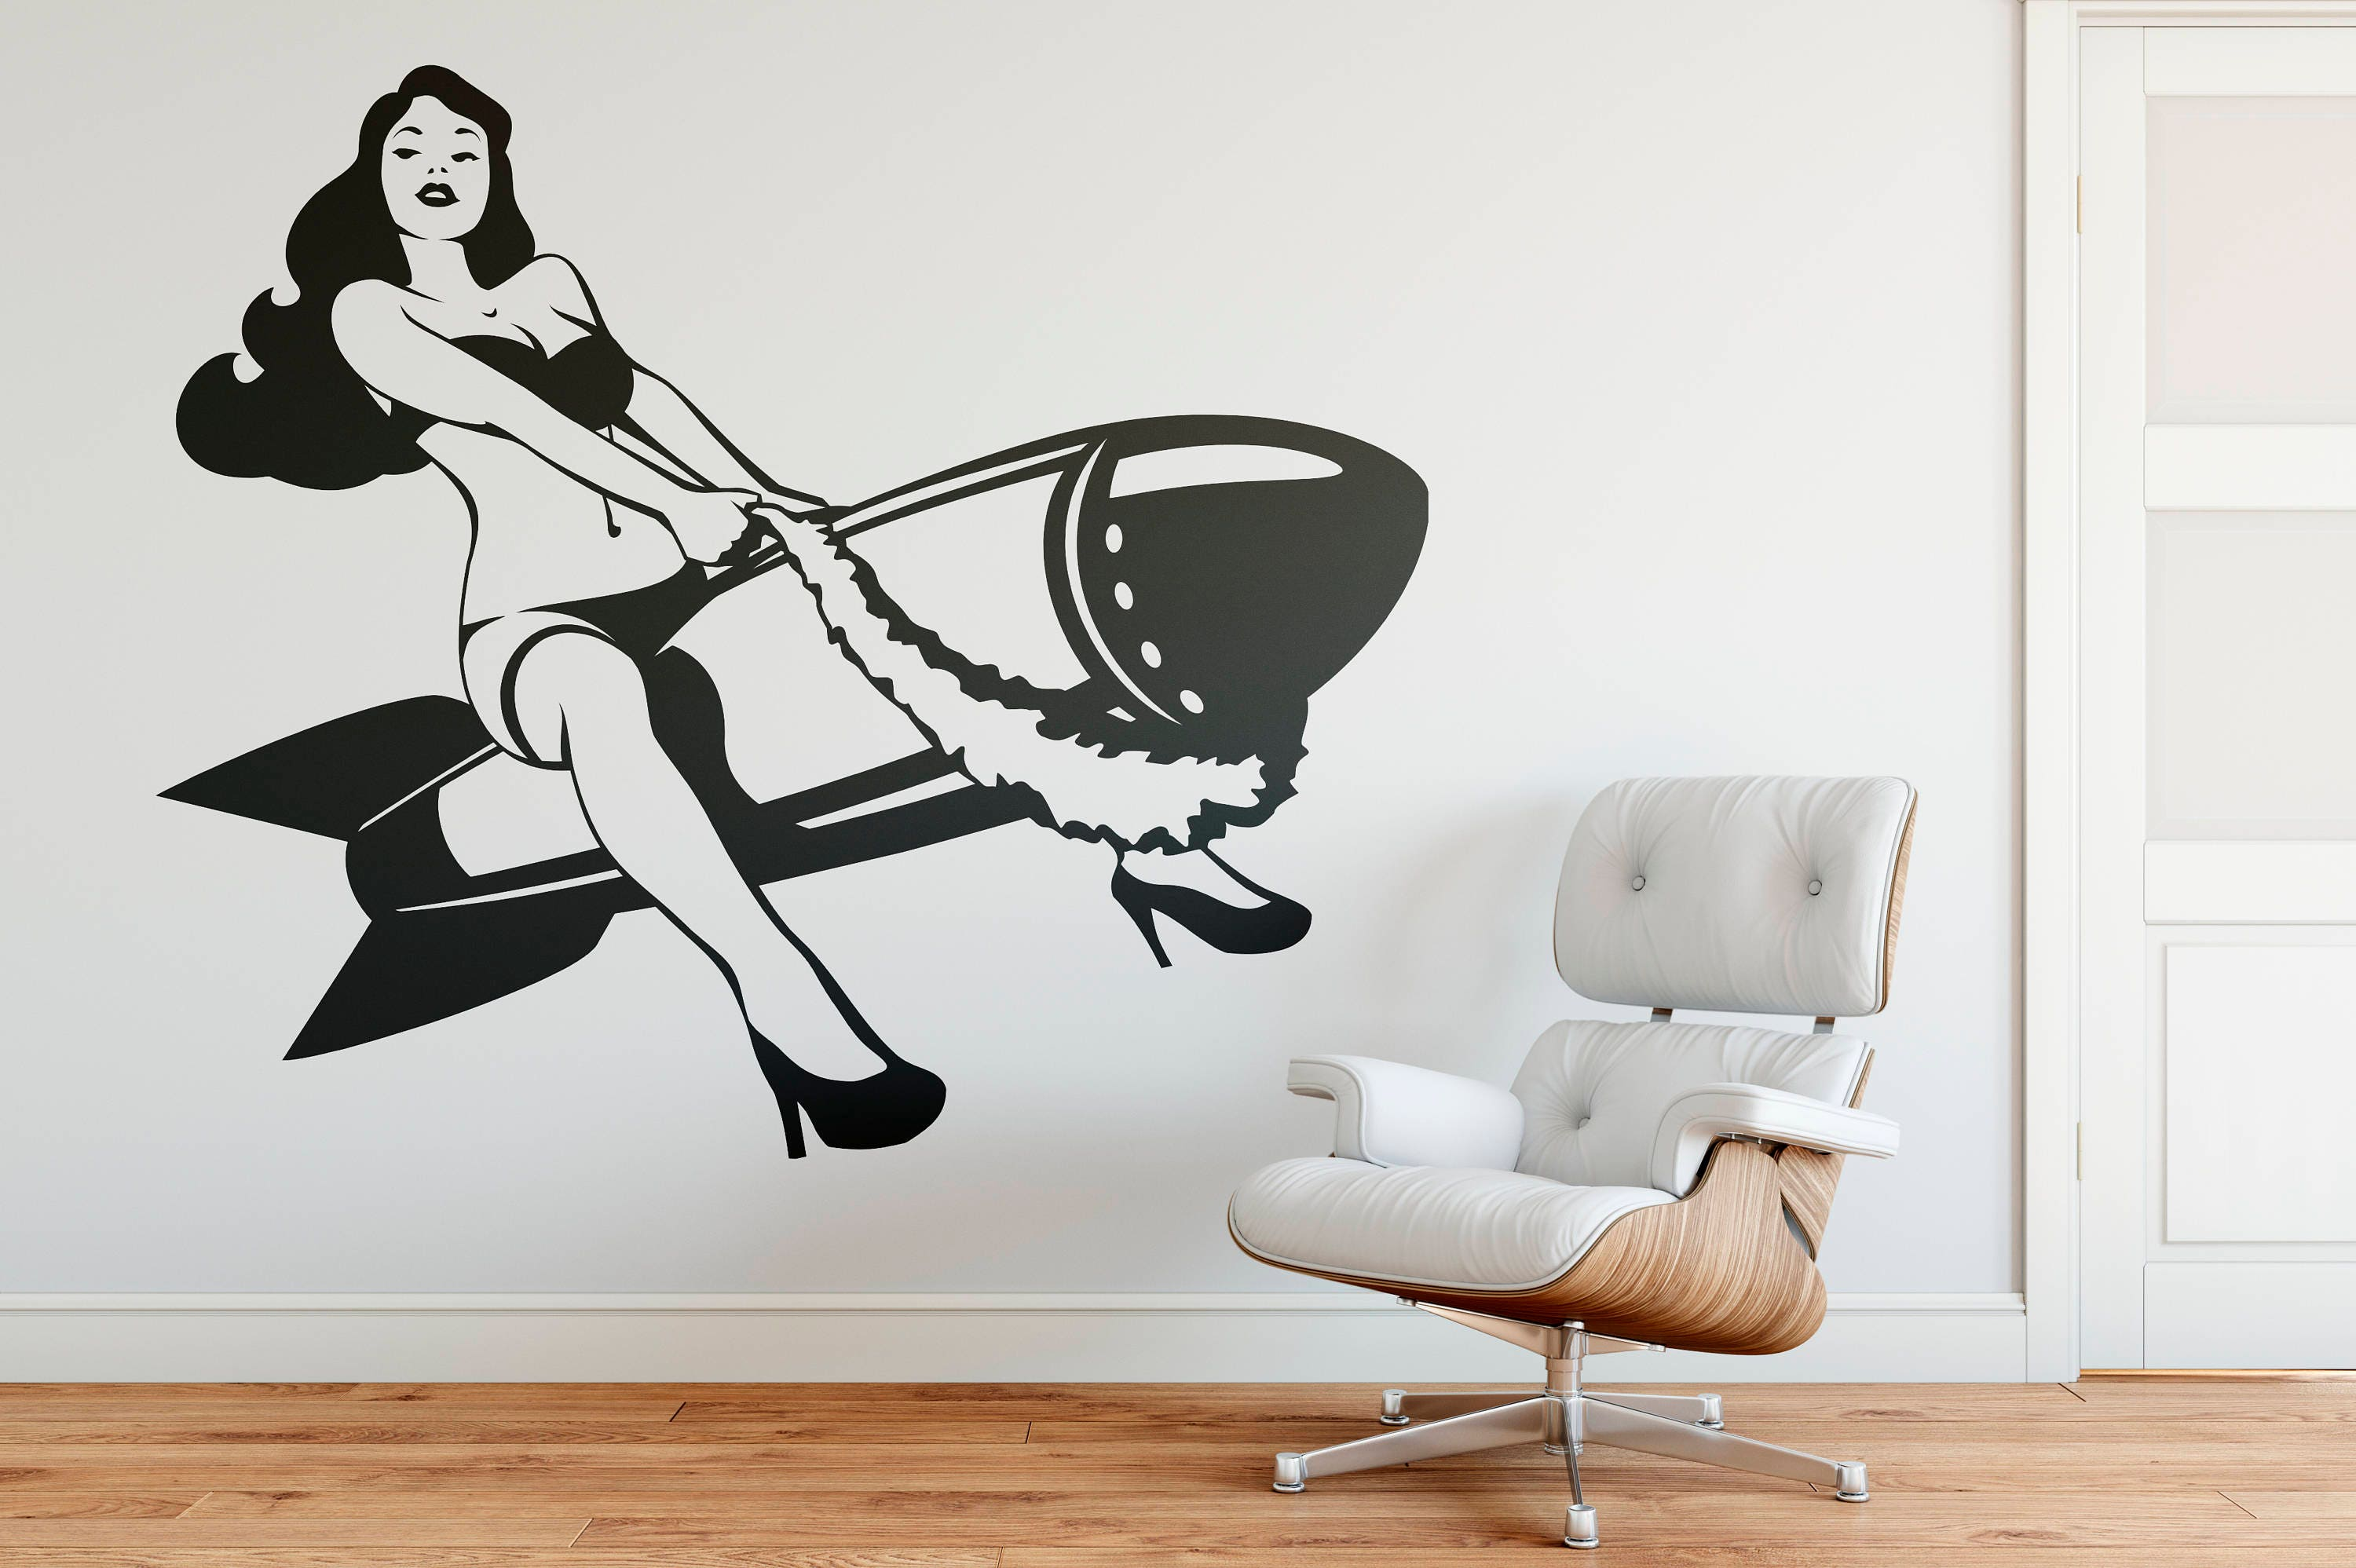 Sexy Pinup Girl Riding A Bomb Wall Decal, Old, Iconic And Vintage, Cheesecake Photo -5903